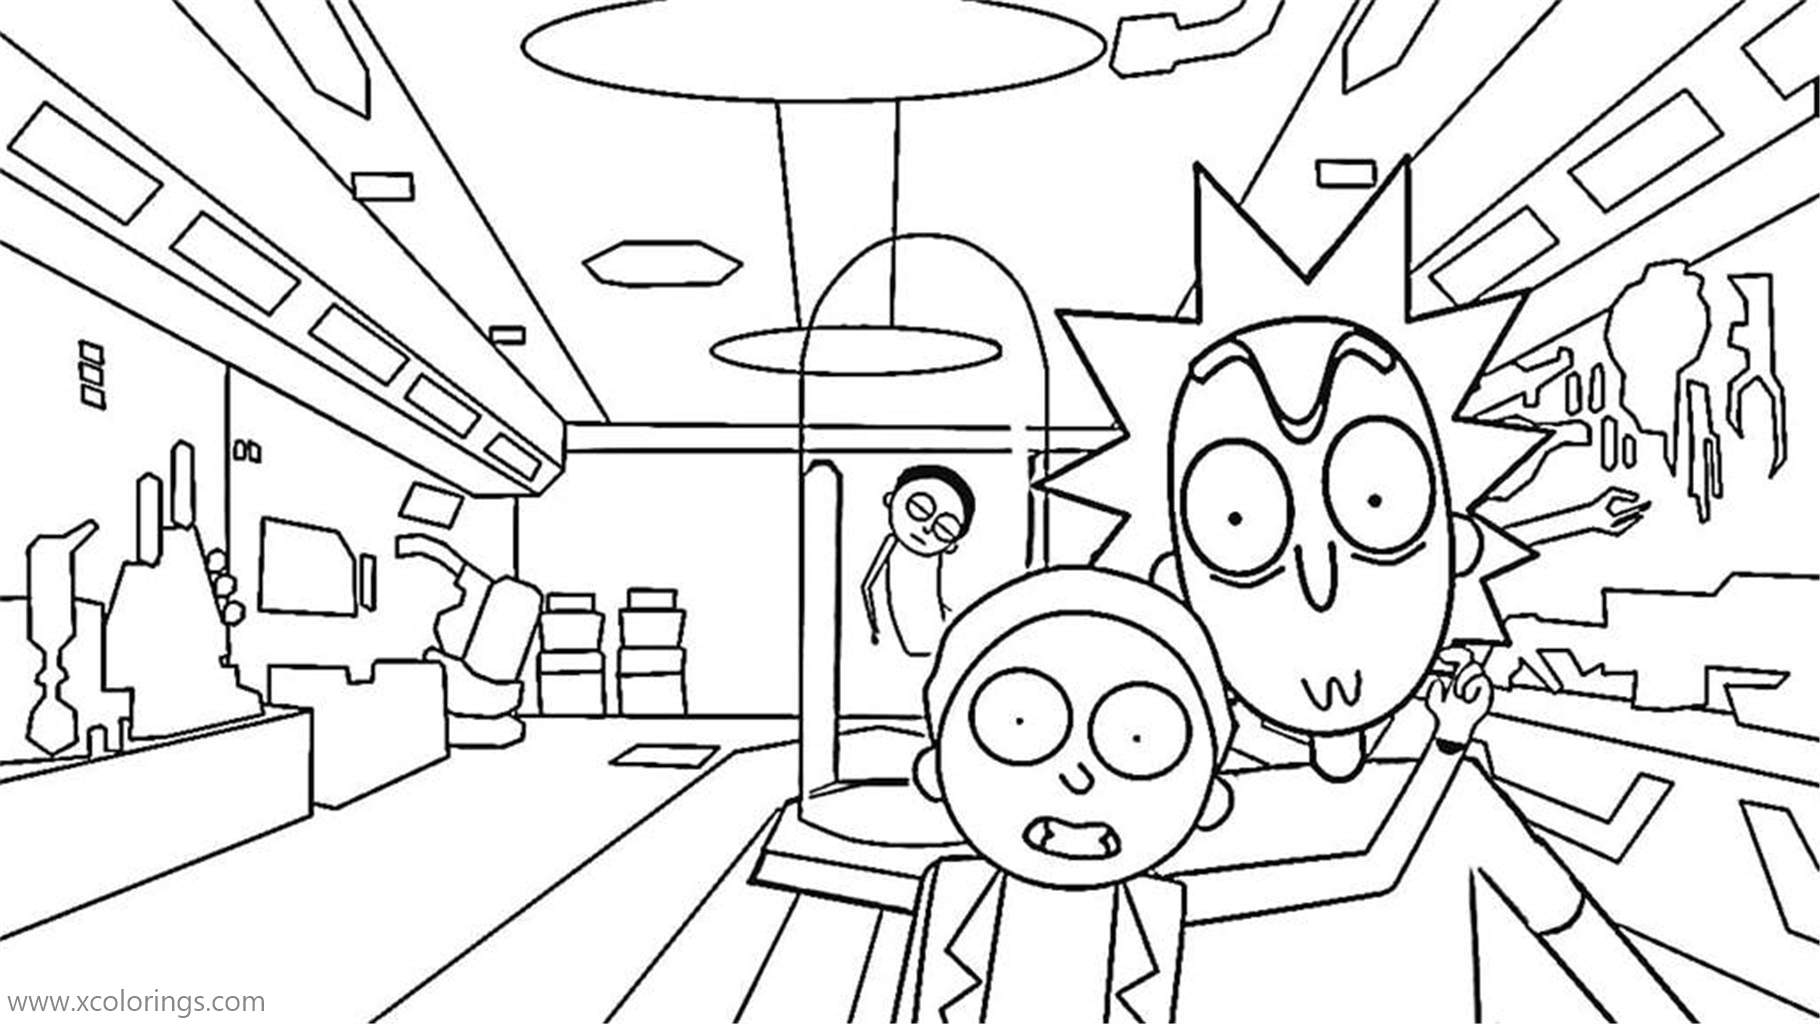 Rick And Morty In The Lab Coloring Pages Xcolorings Com